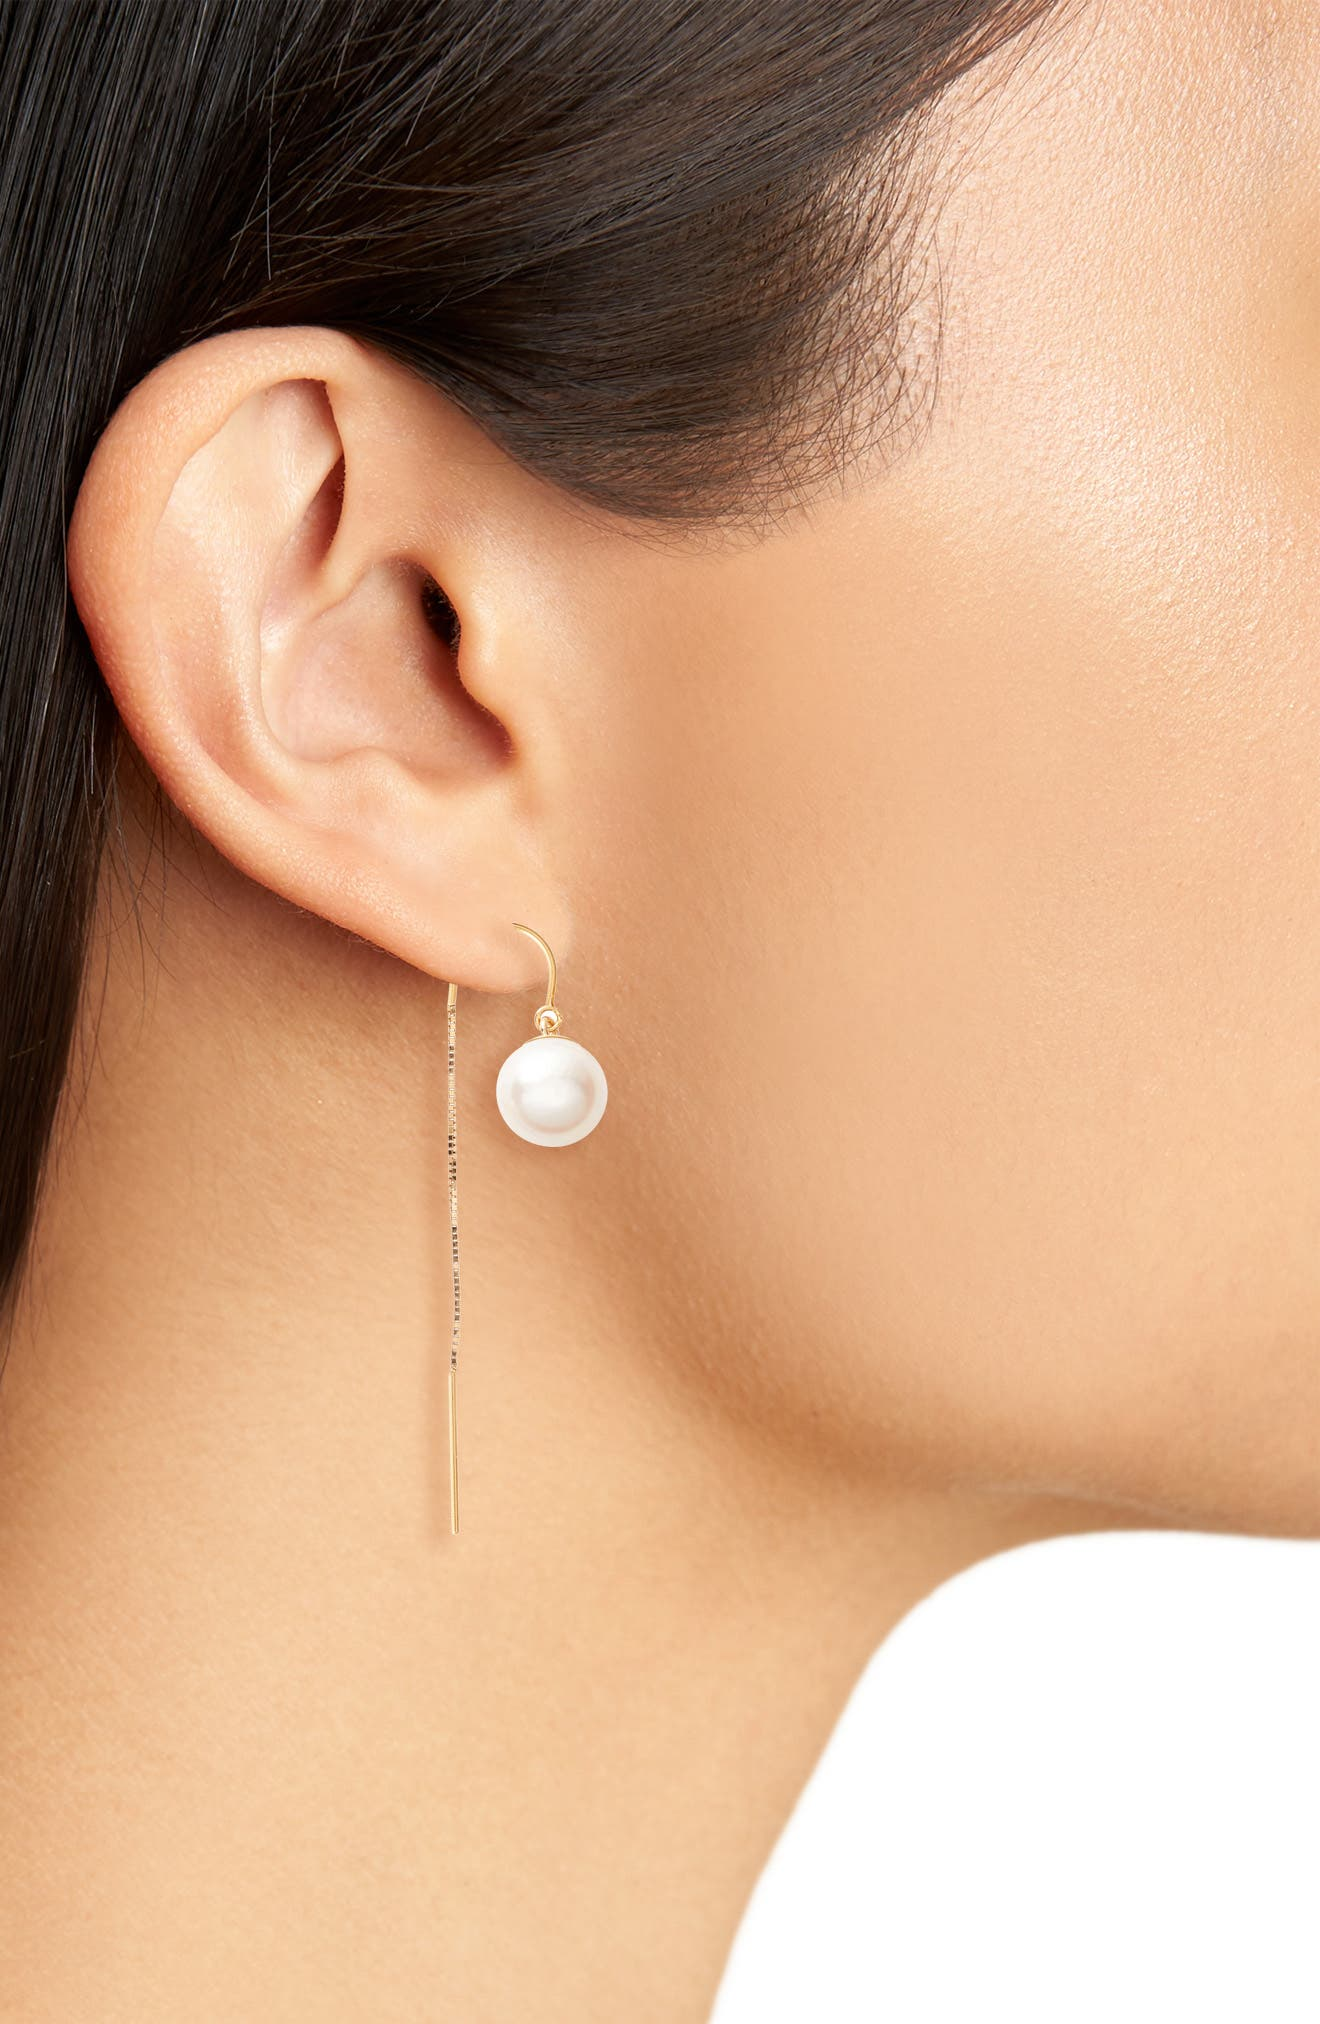 Pearl Threader Earrings,                             Alternate thumbnail 3, color,                             YELLOW GOLD/ WHITE PEARL